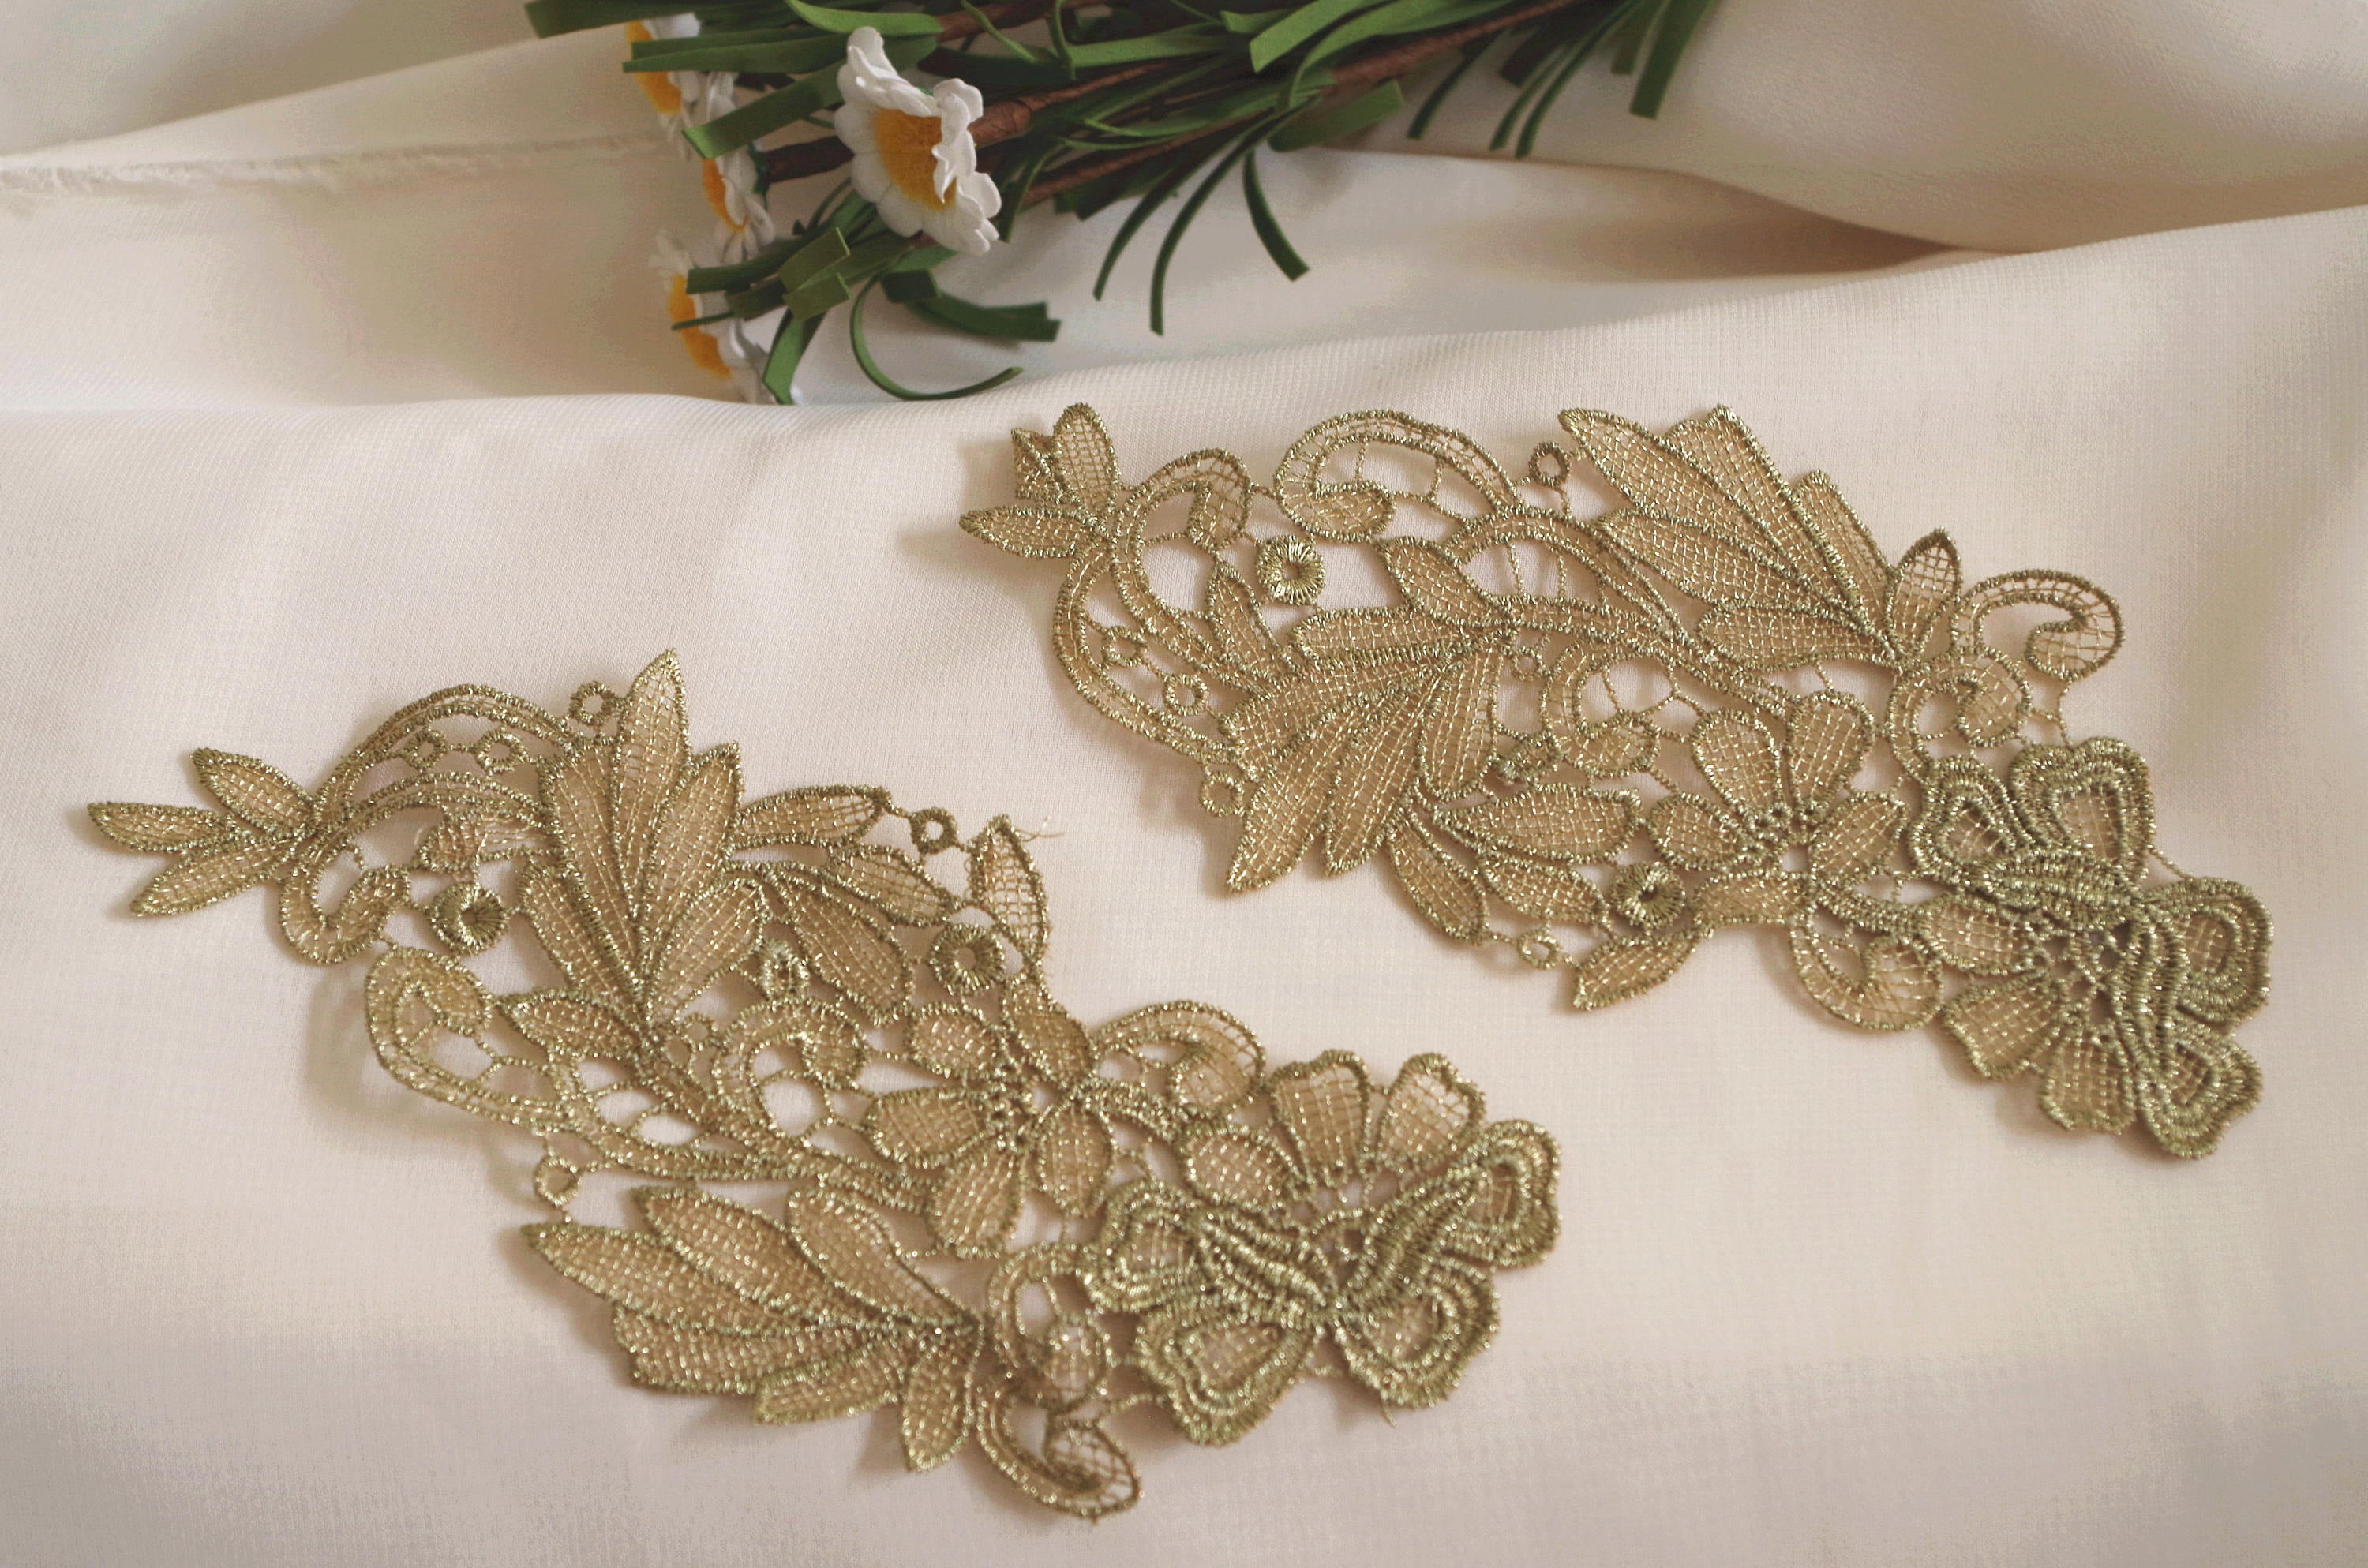 2pcs metallic gold lace applique by pairs, retro metallic gold venise lace applique